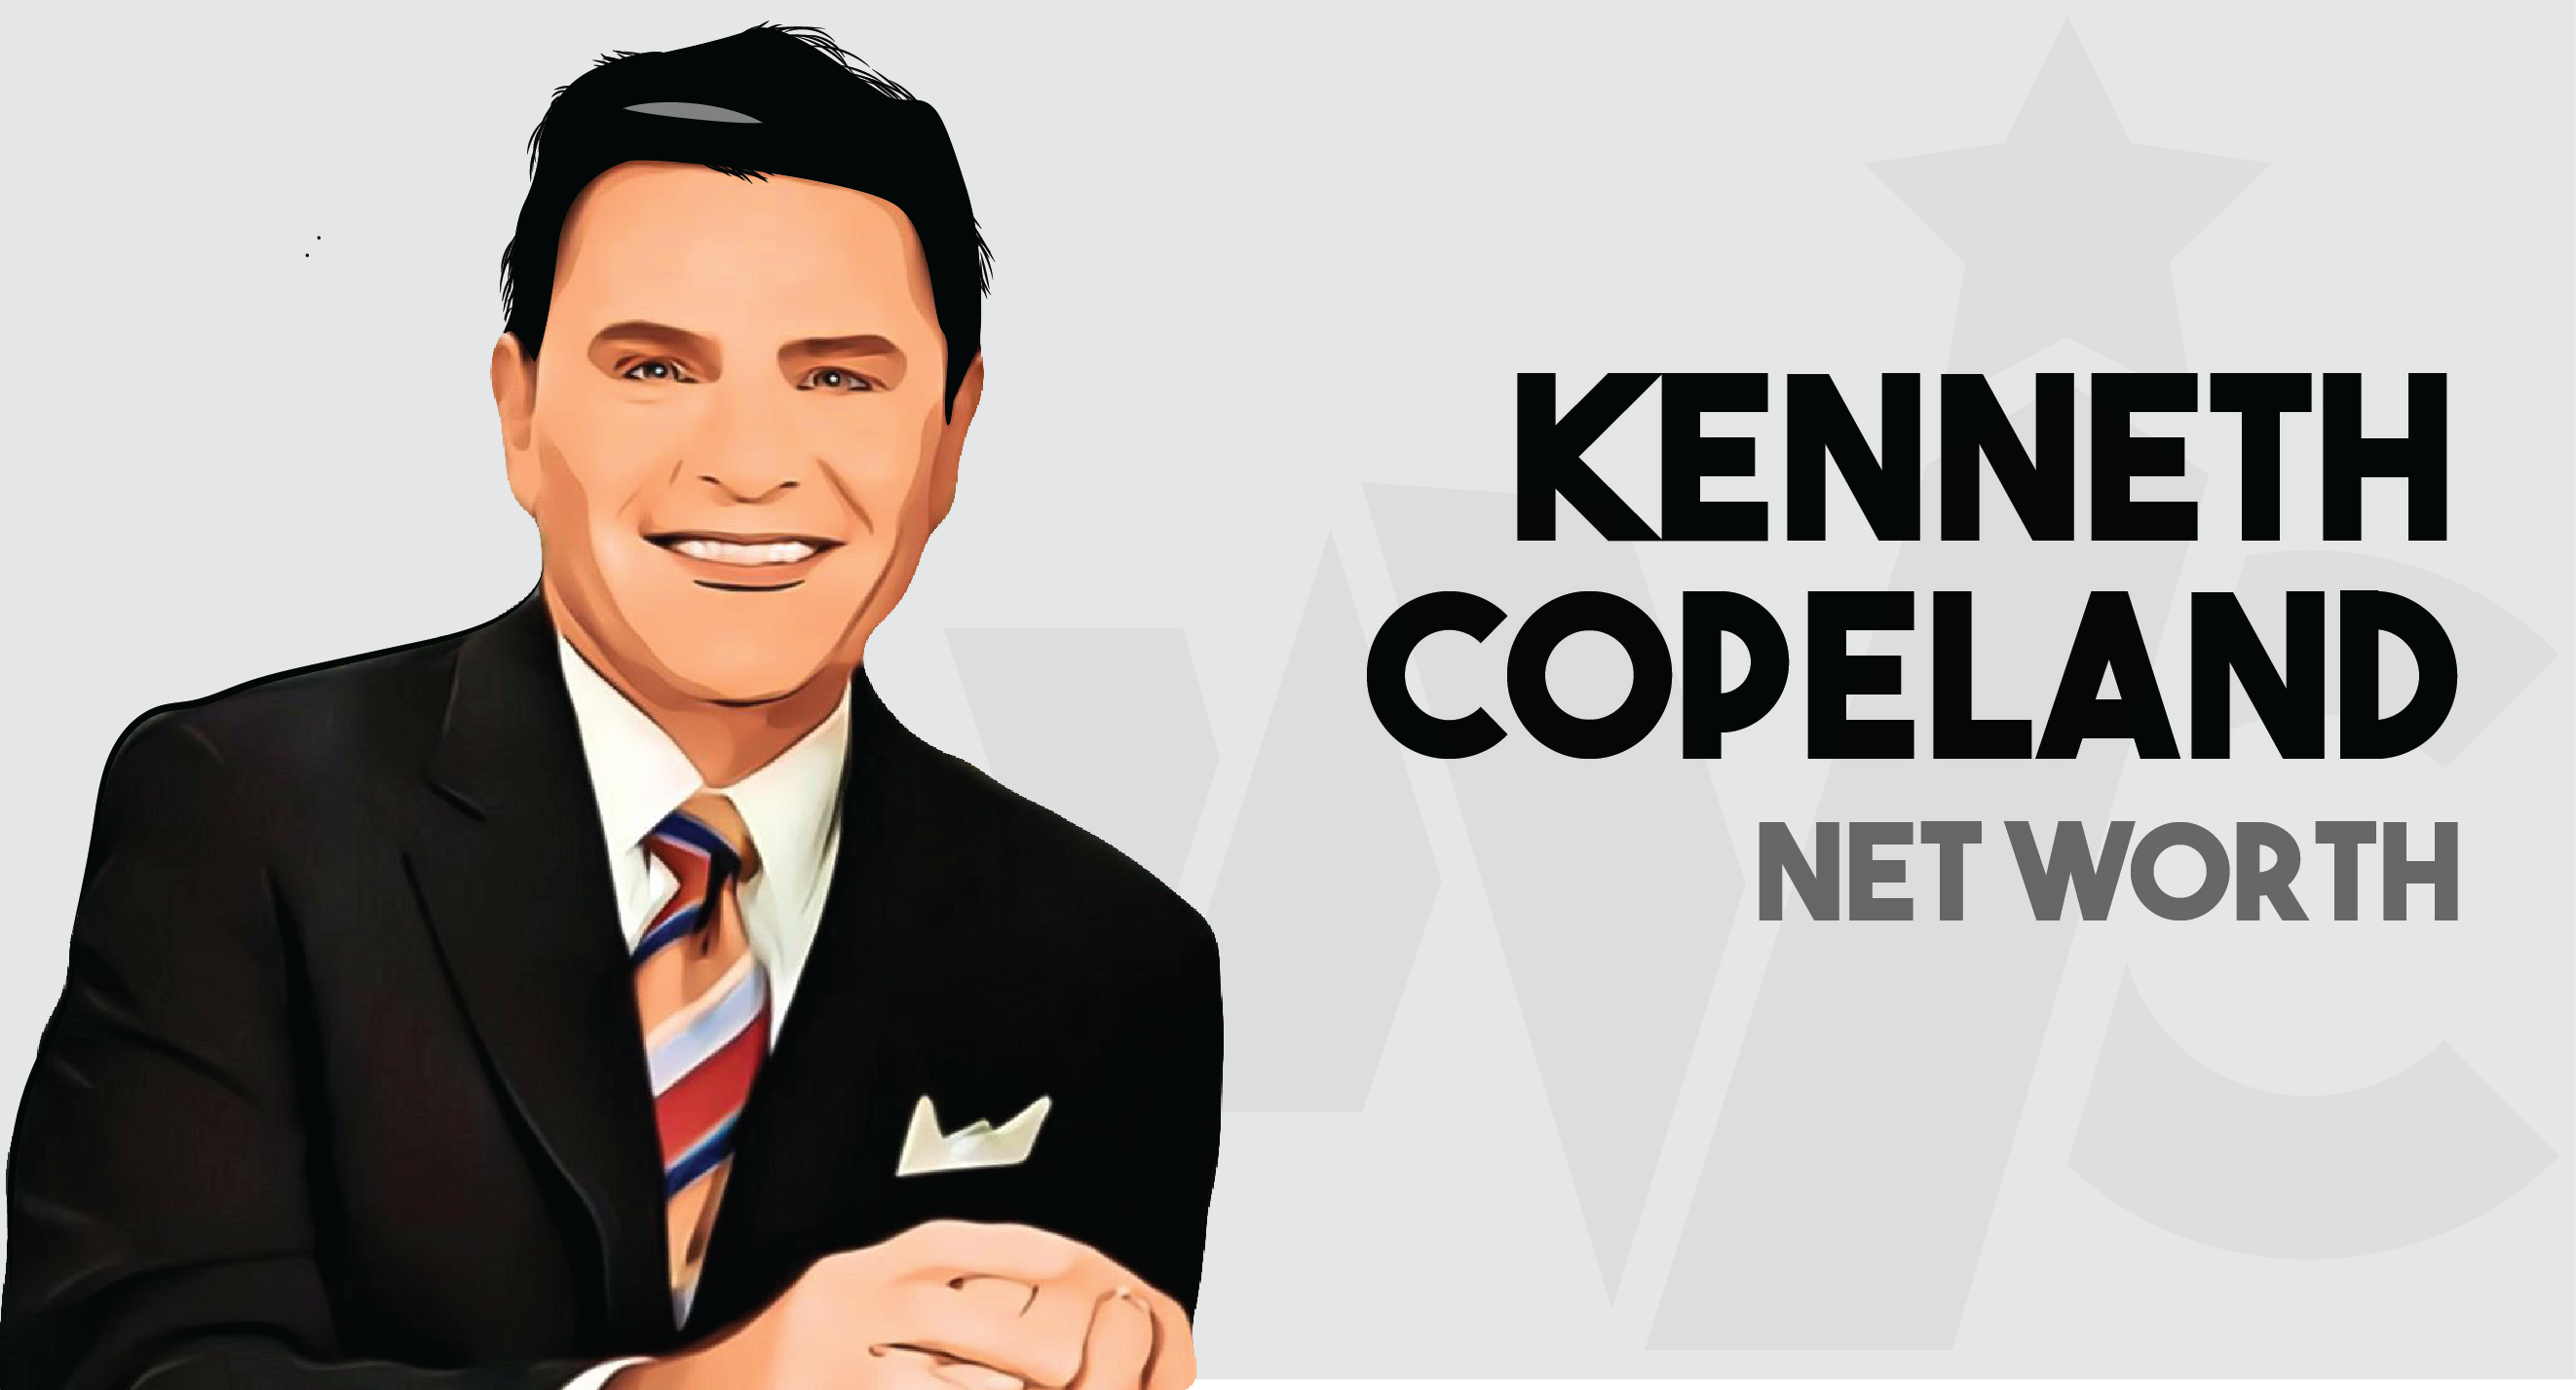 Kenneth Copeland - Net worth